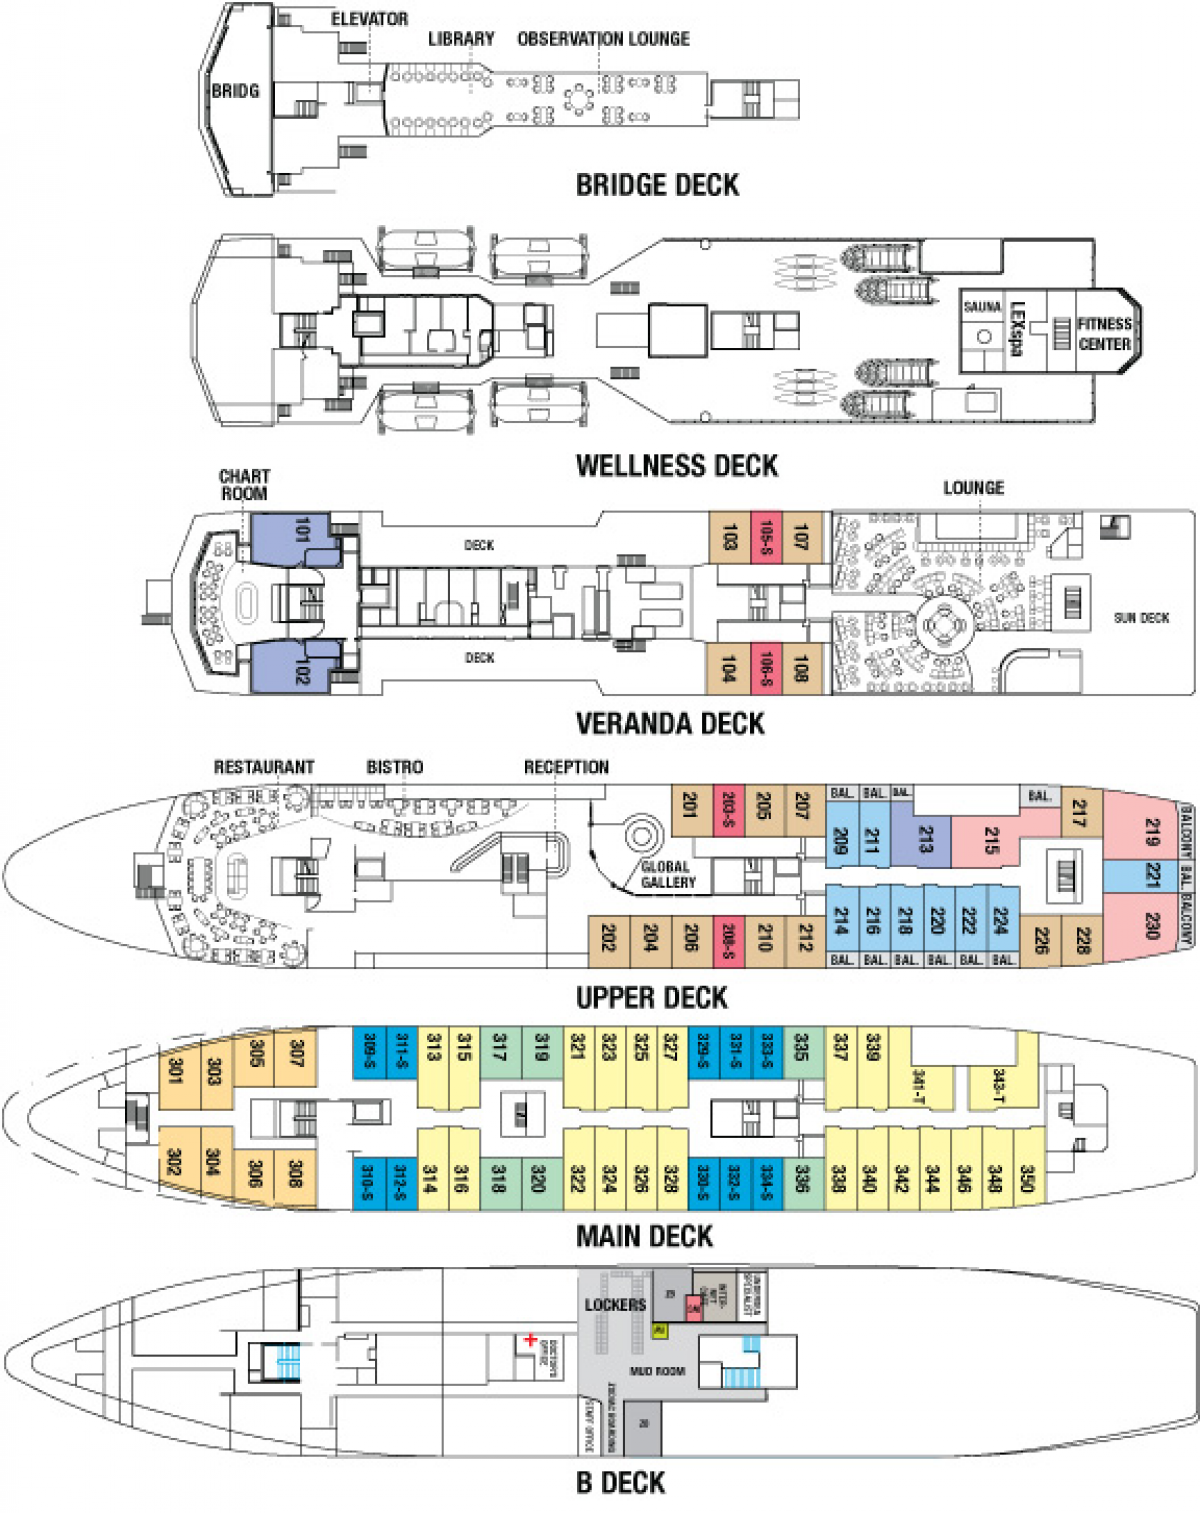 National Geographic Explorer - National Geographic Explorer Deck Plan